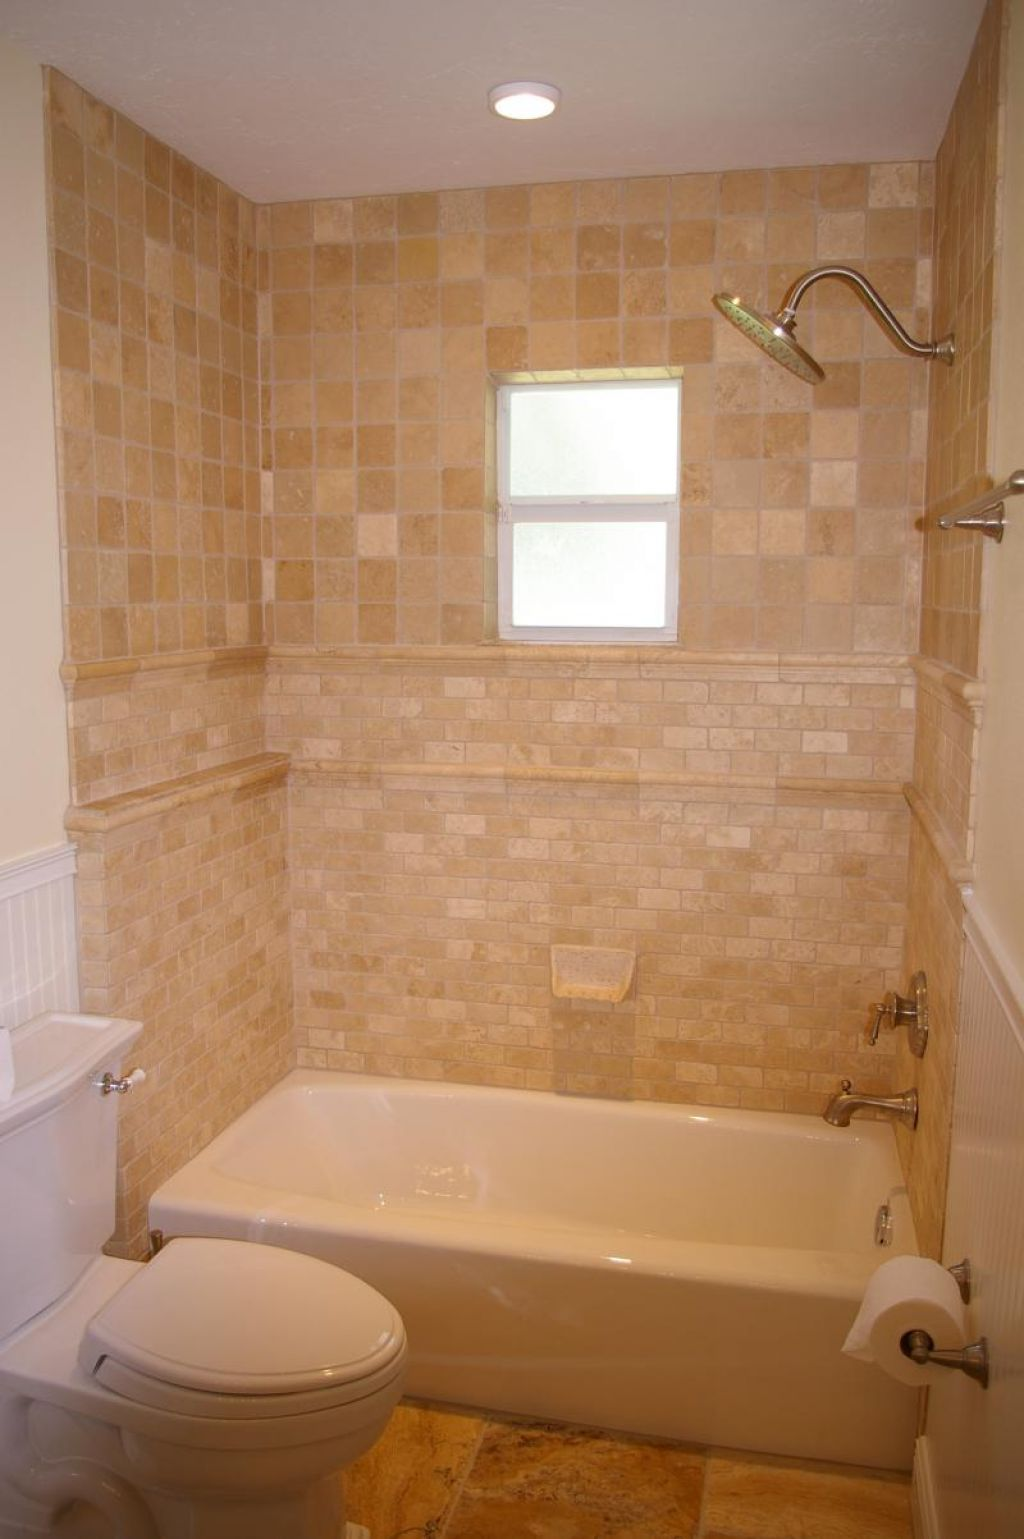 30 shower tile ideas on a budget for Bathroom improvements